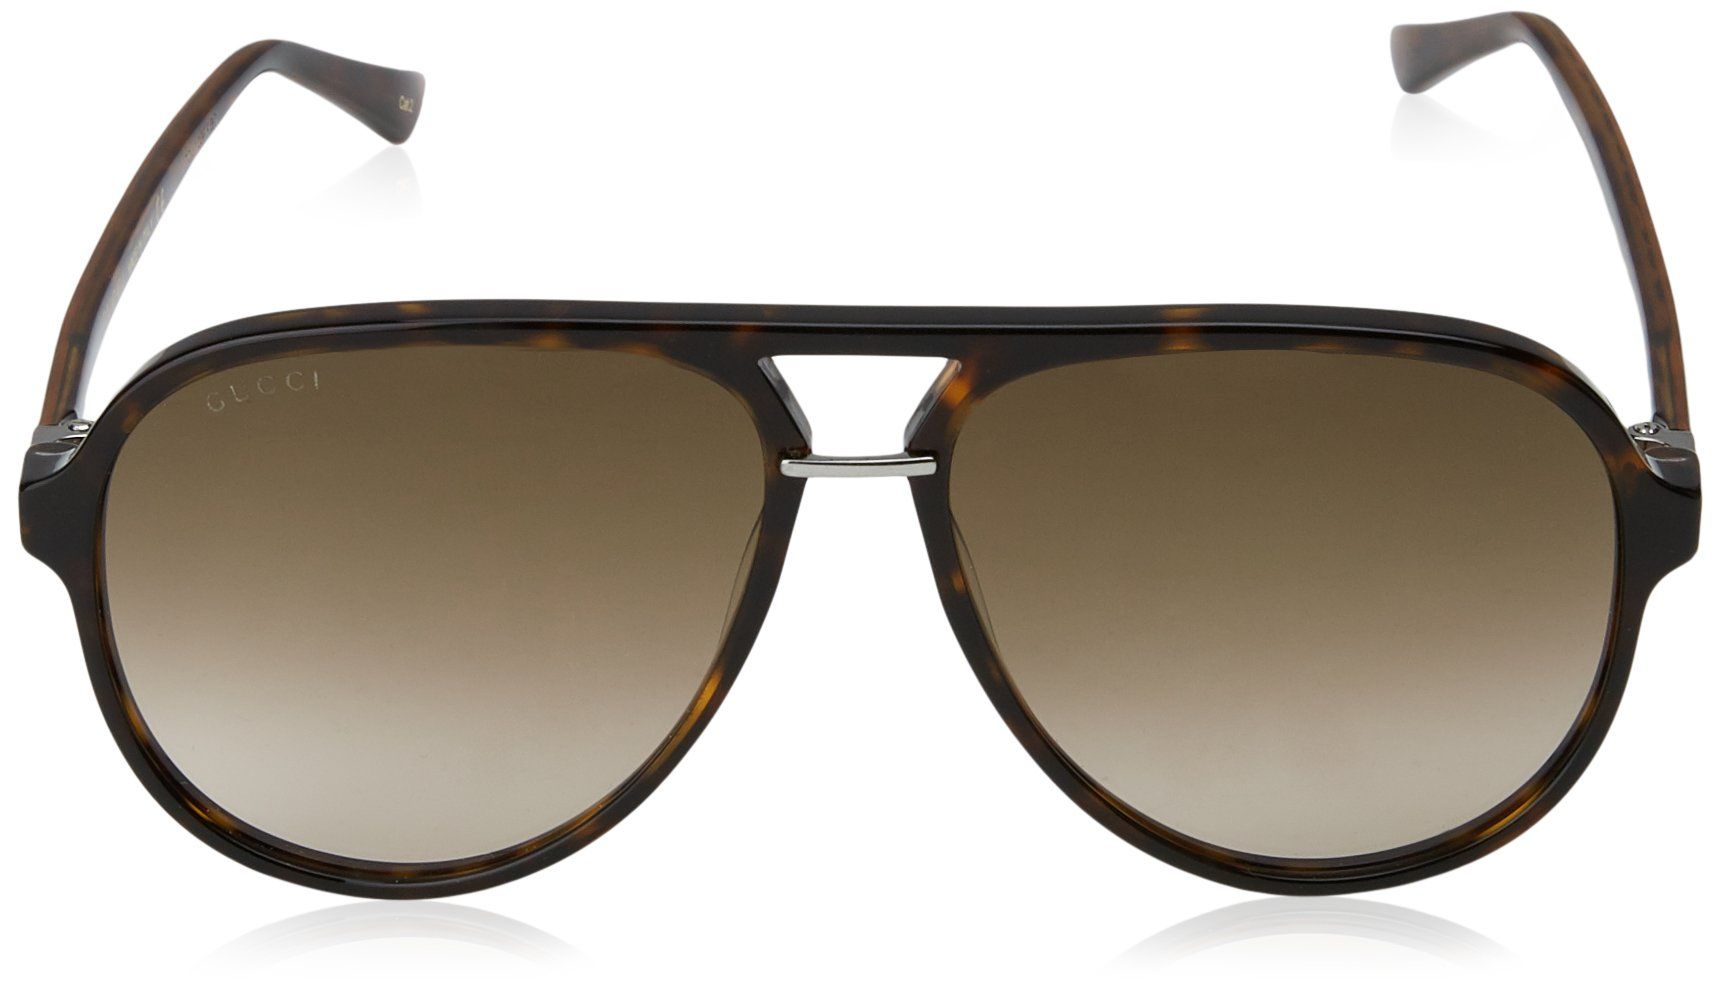 0f893eb424 Gucci Pilot Shape Fashion Sunglasses 58 14 140 Avana   Brown   Avana ...